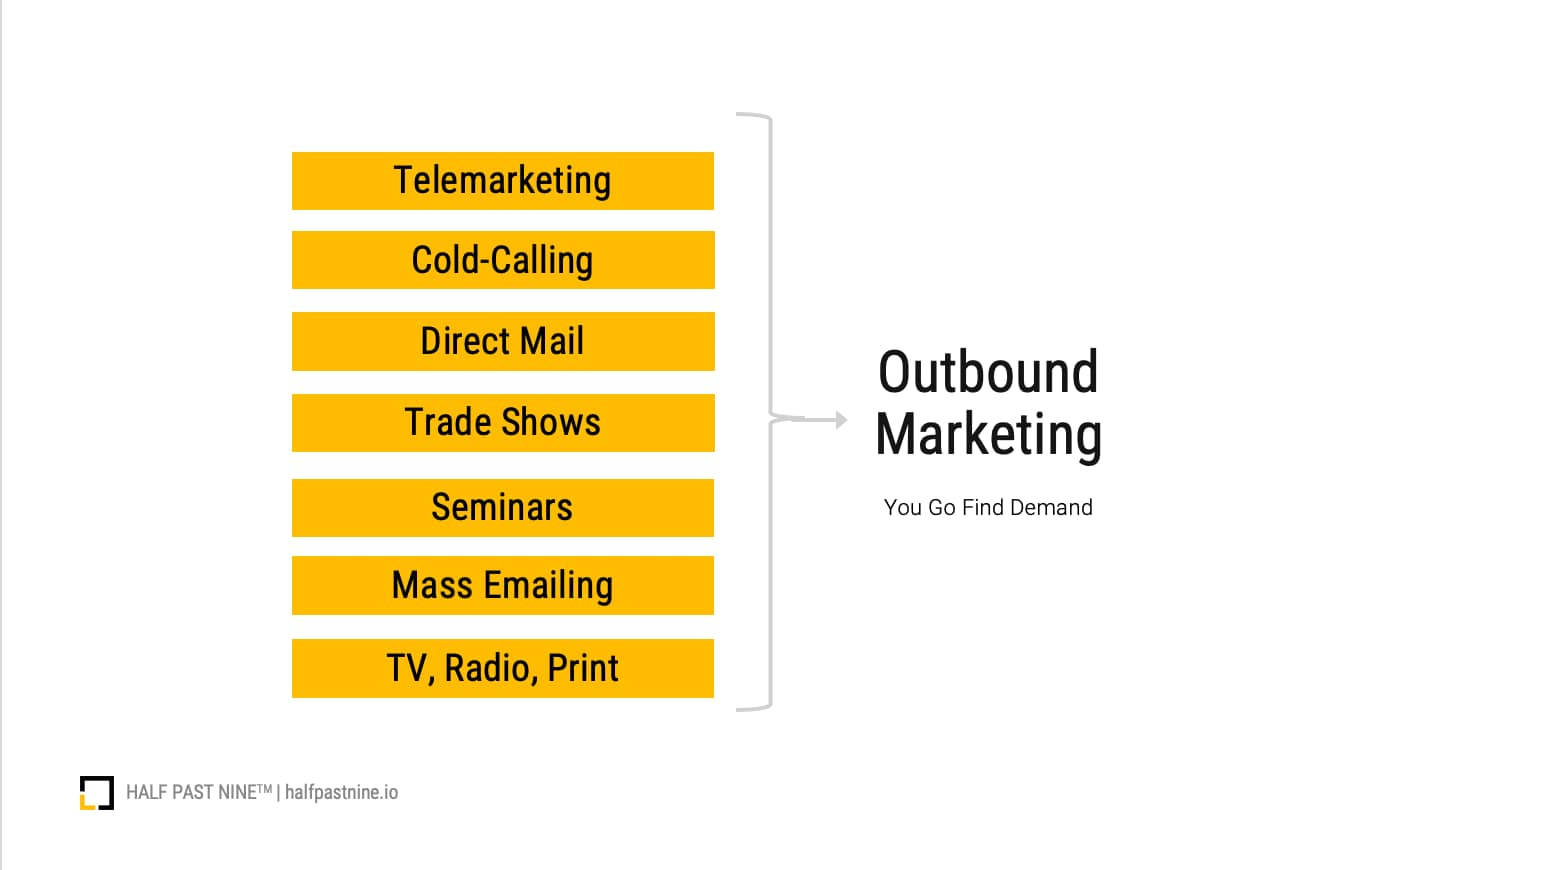 A infographic on what constitutes outbound marketing channels and examples, like telemarketing, cold-calling, direct-mail, trade shows, seminars, emailing, and more.